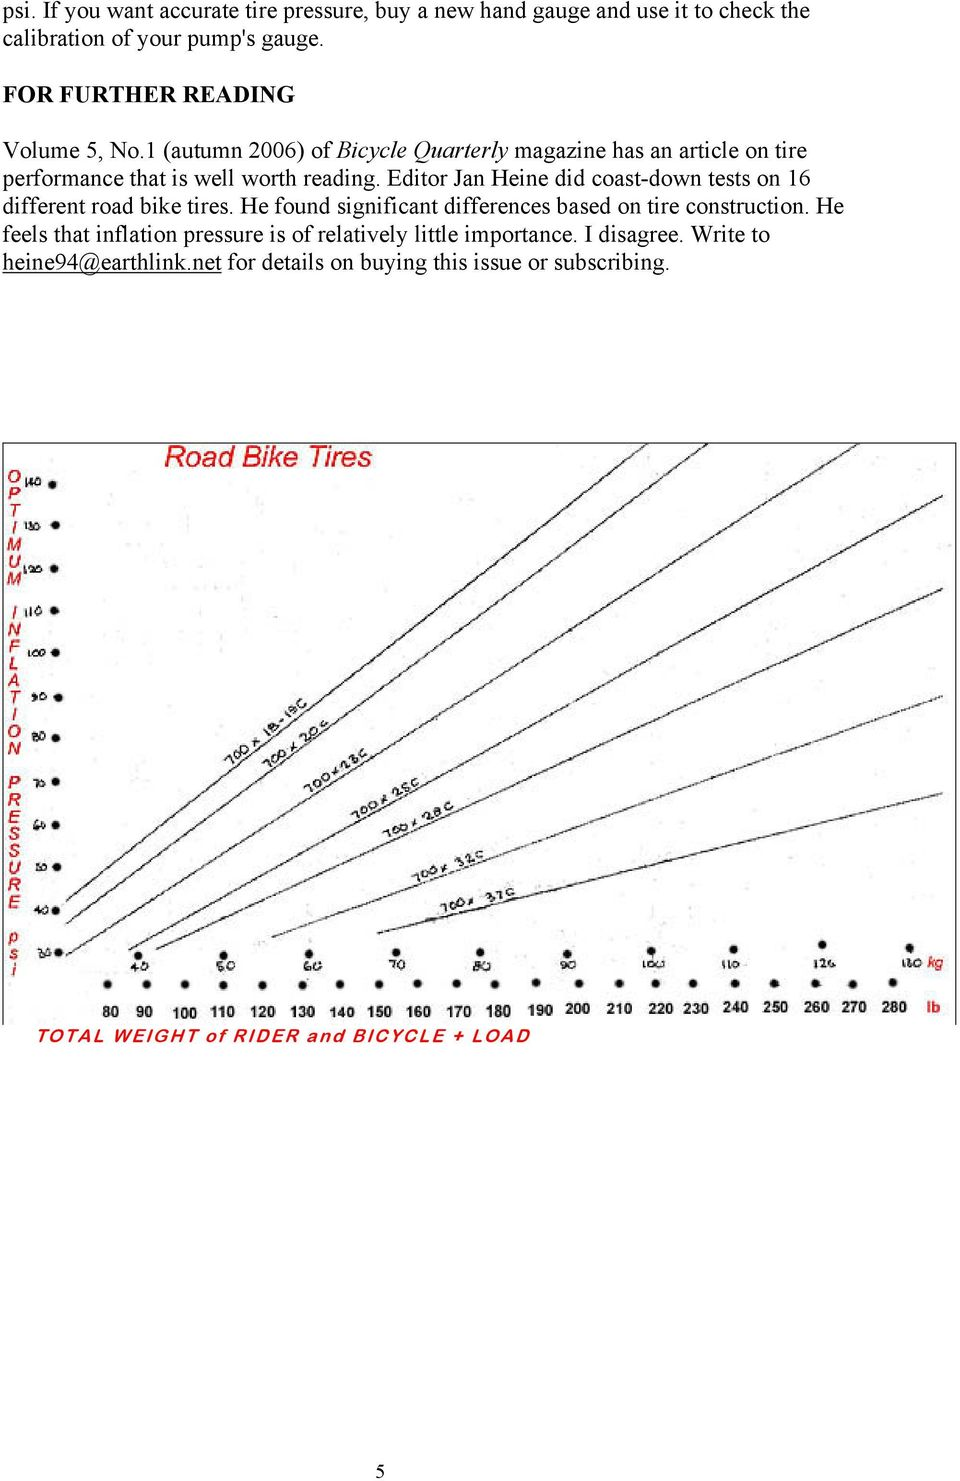 All About Tire Inflation - PDF